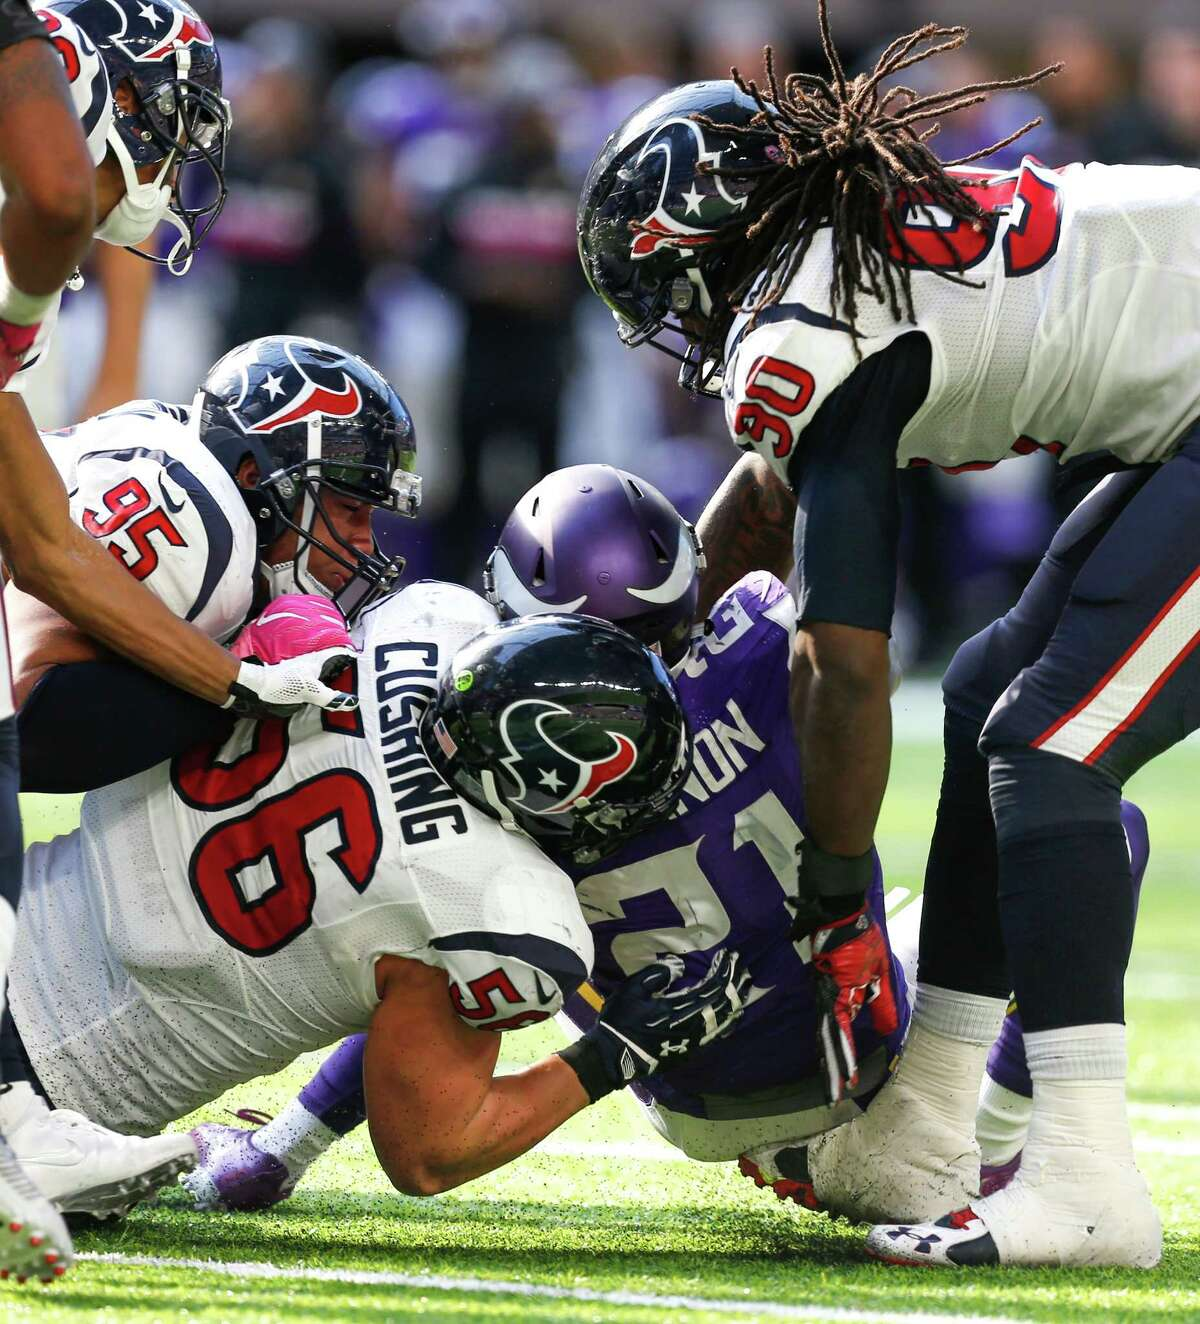 Minnesota Vikings running back Jerick McKinnon (21) is tackled by Houston Texans inside linebacker Brian Cushing (56) and defensive end Jadeveon Clowney (90) during the fourth quarter of an NFL football game at U.S. Bank Stadium on Sunday, Oct. 9, 2016, in Minneapolis.